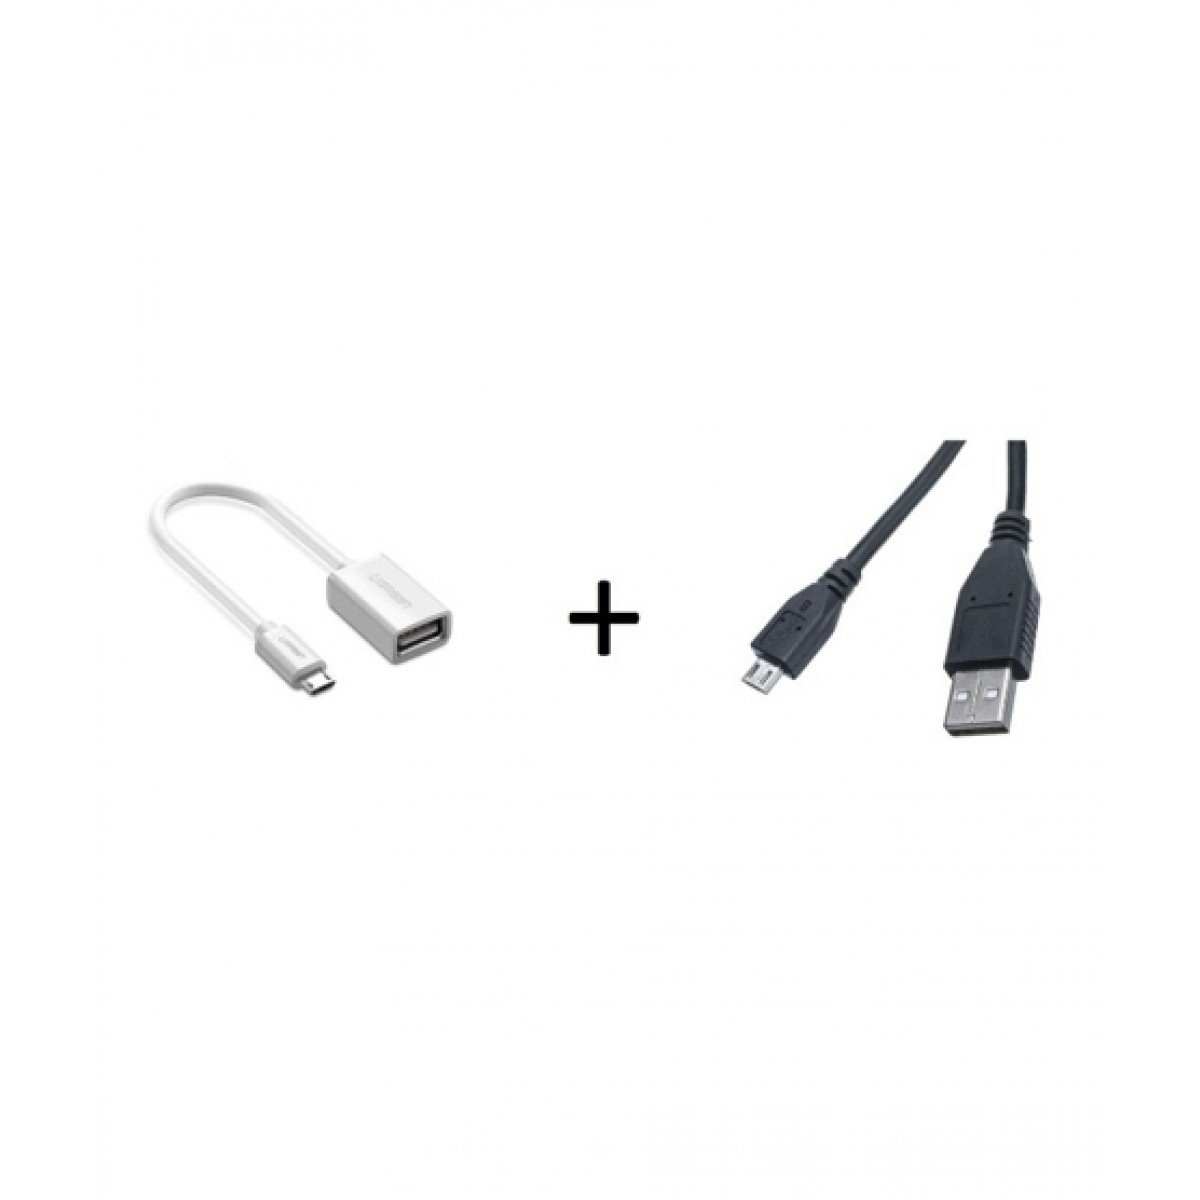 SubKuch Metal USB 2 0 with USB Data Cable